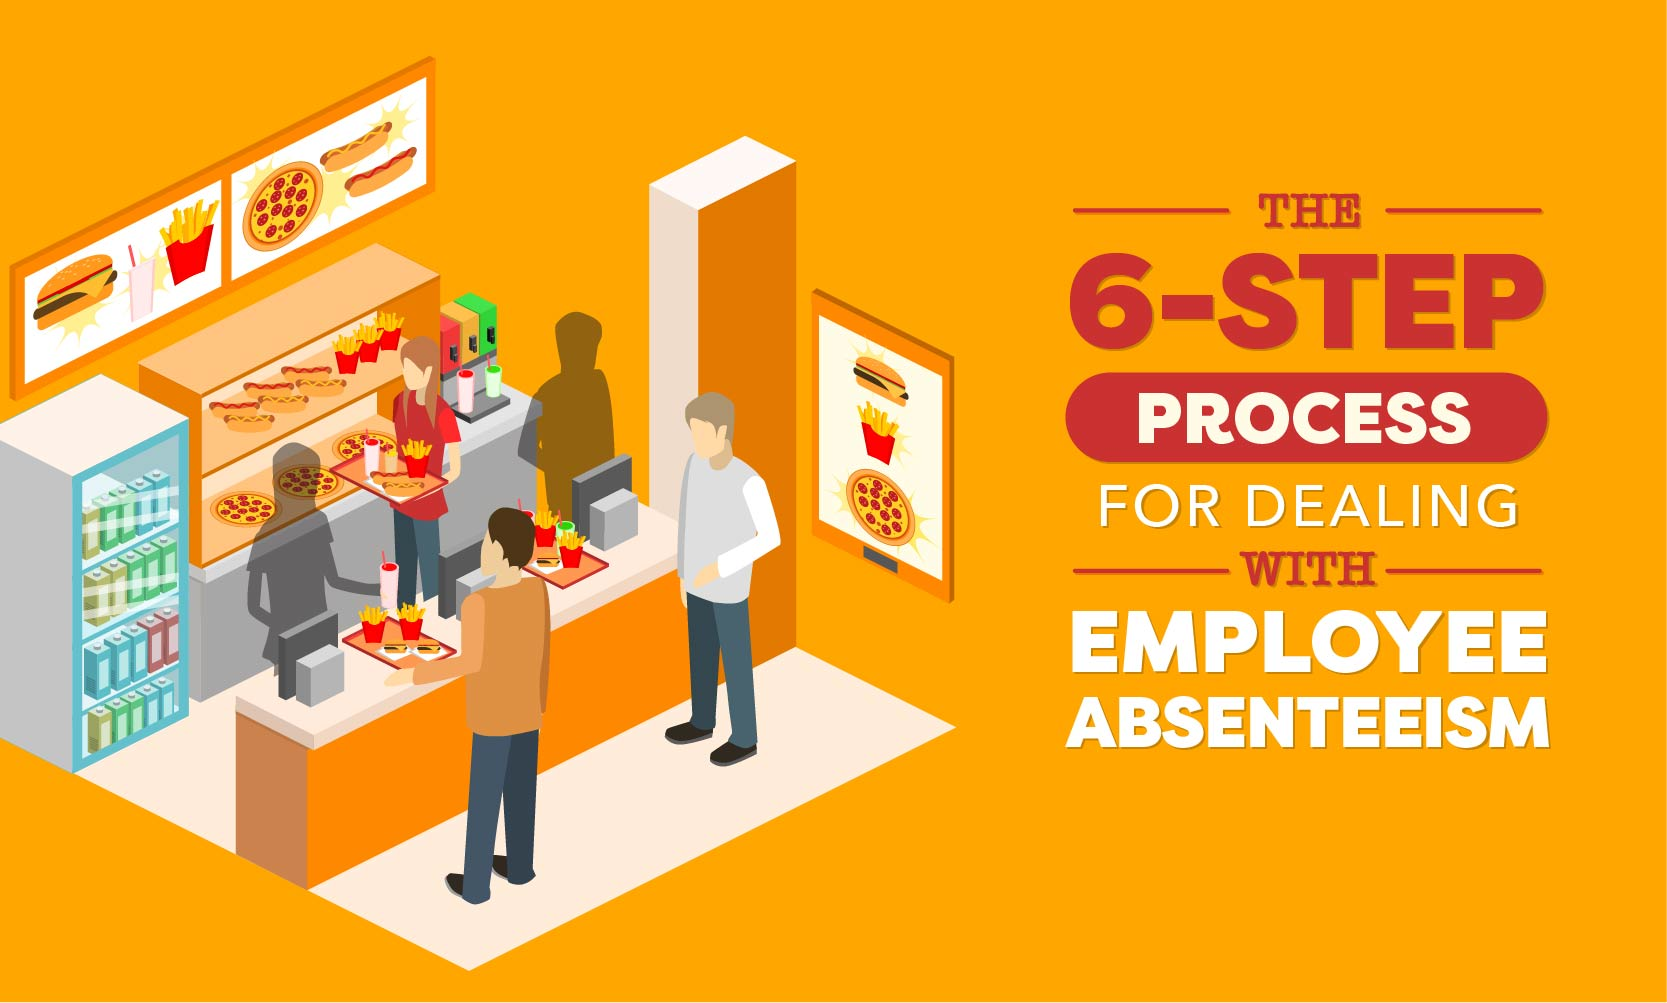 The 6-Step Process for Dealing with Employee Absenteeism - When I Work